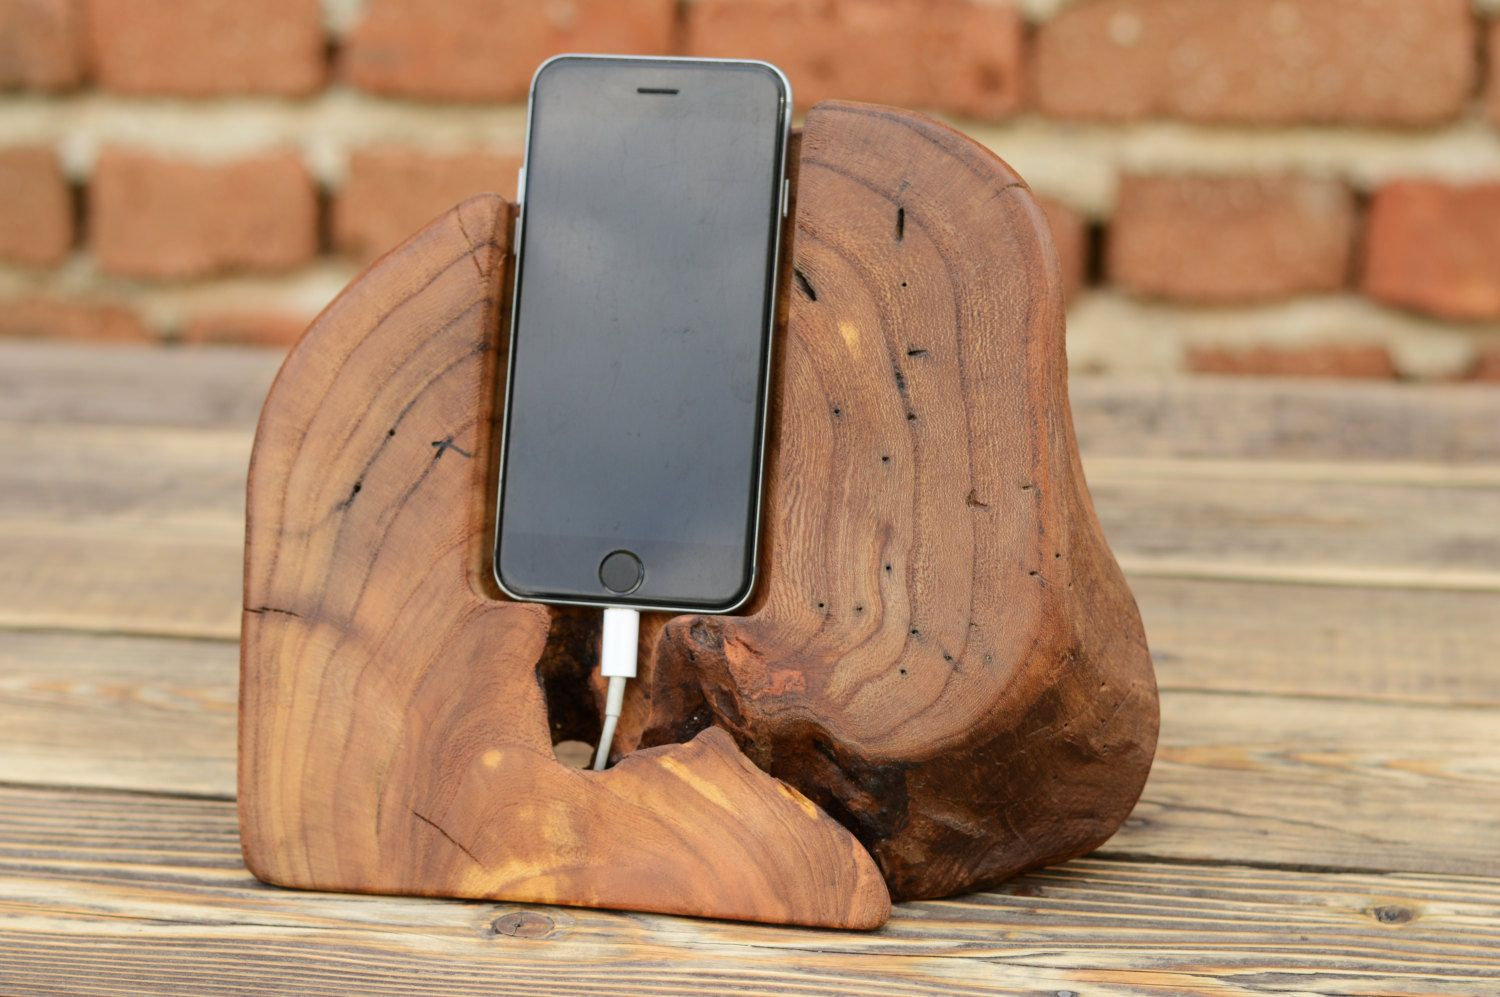 Diy phone stand and dock ideas that are out of the box